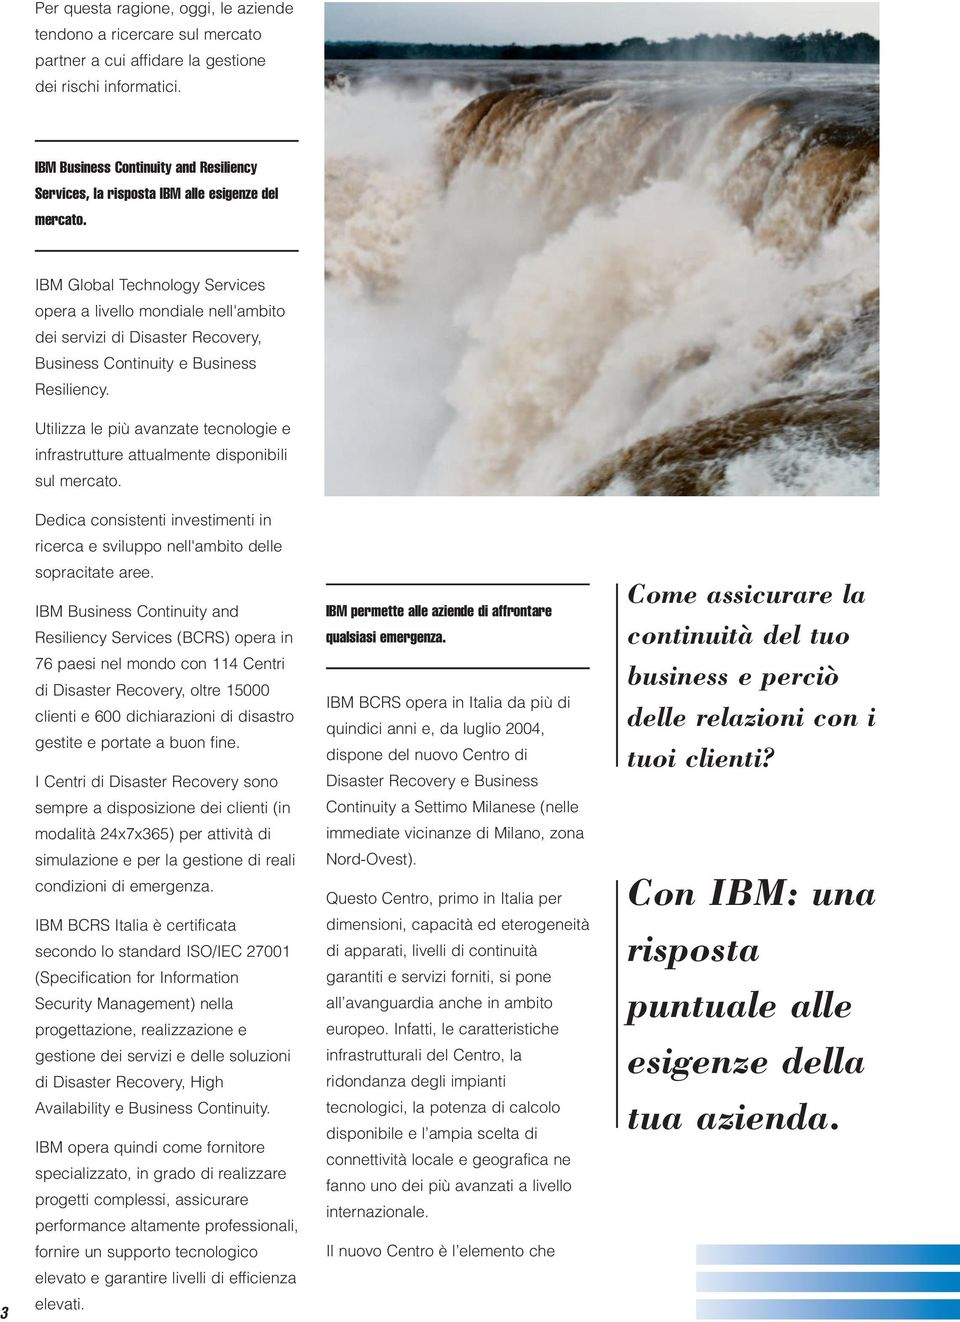 3 IBM Global Technology Services opera a livello mondiale nell'ambito dei servizi di Disaster Recovery, Business Continuity e Business Resiliency.